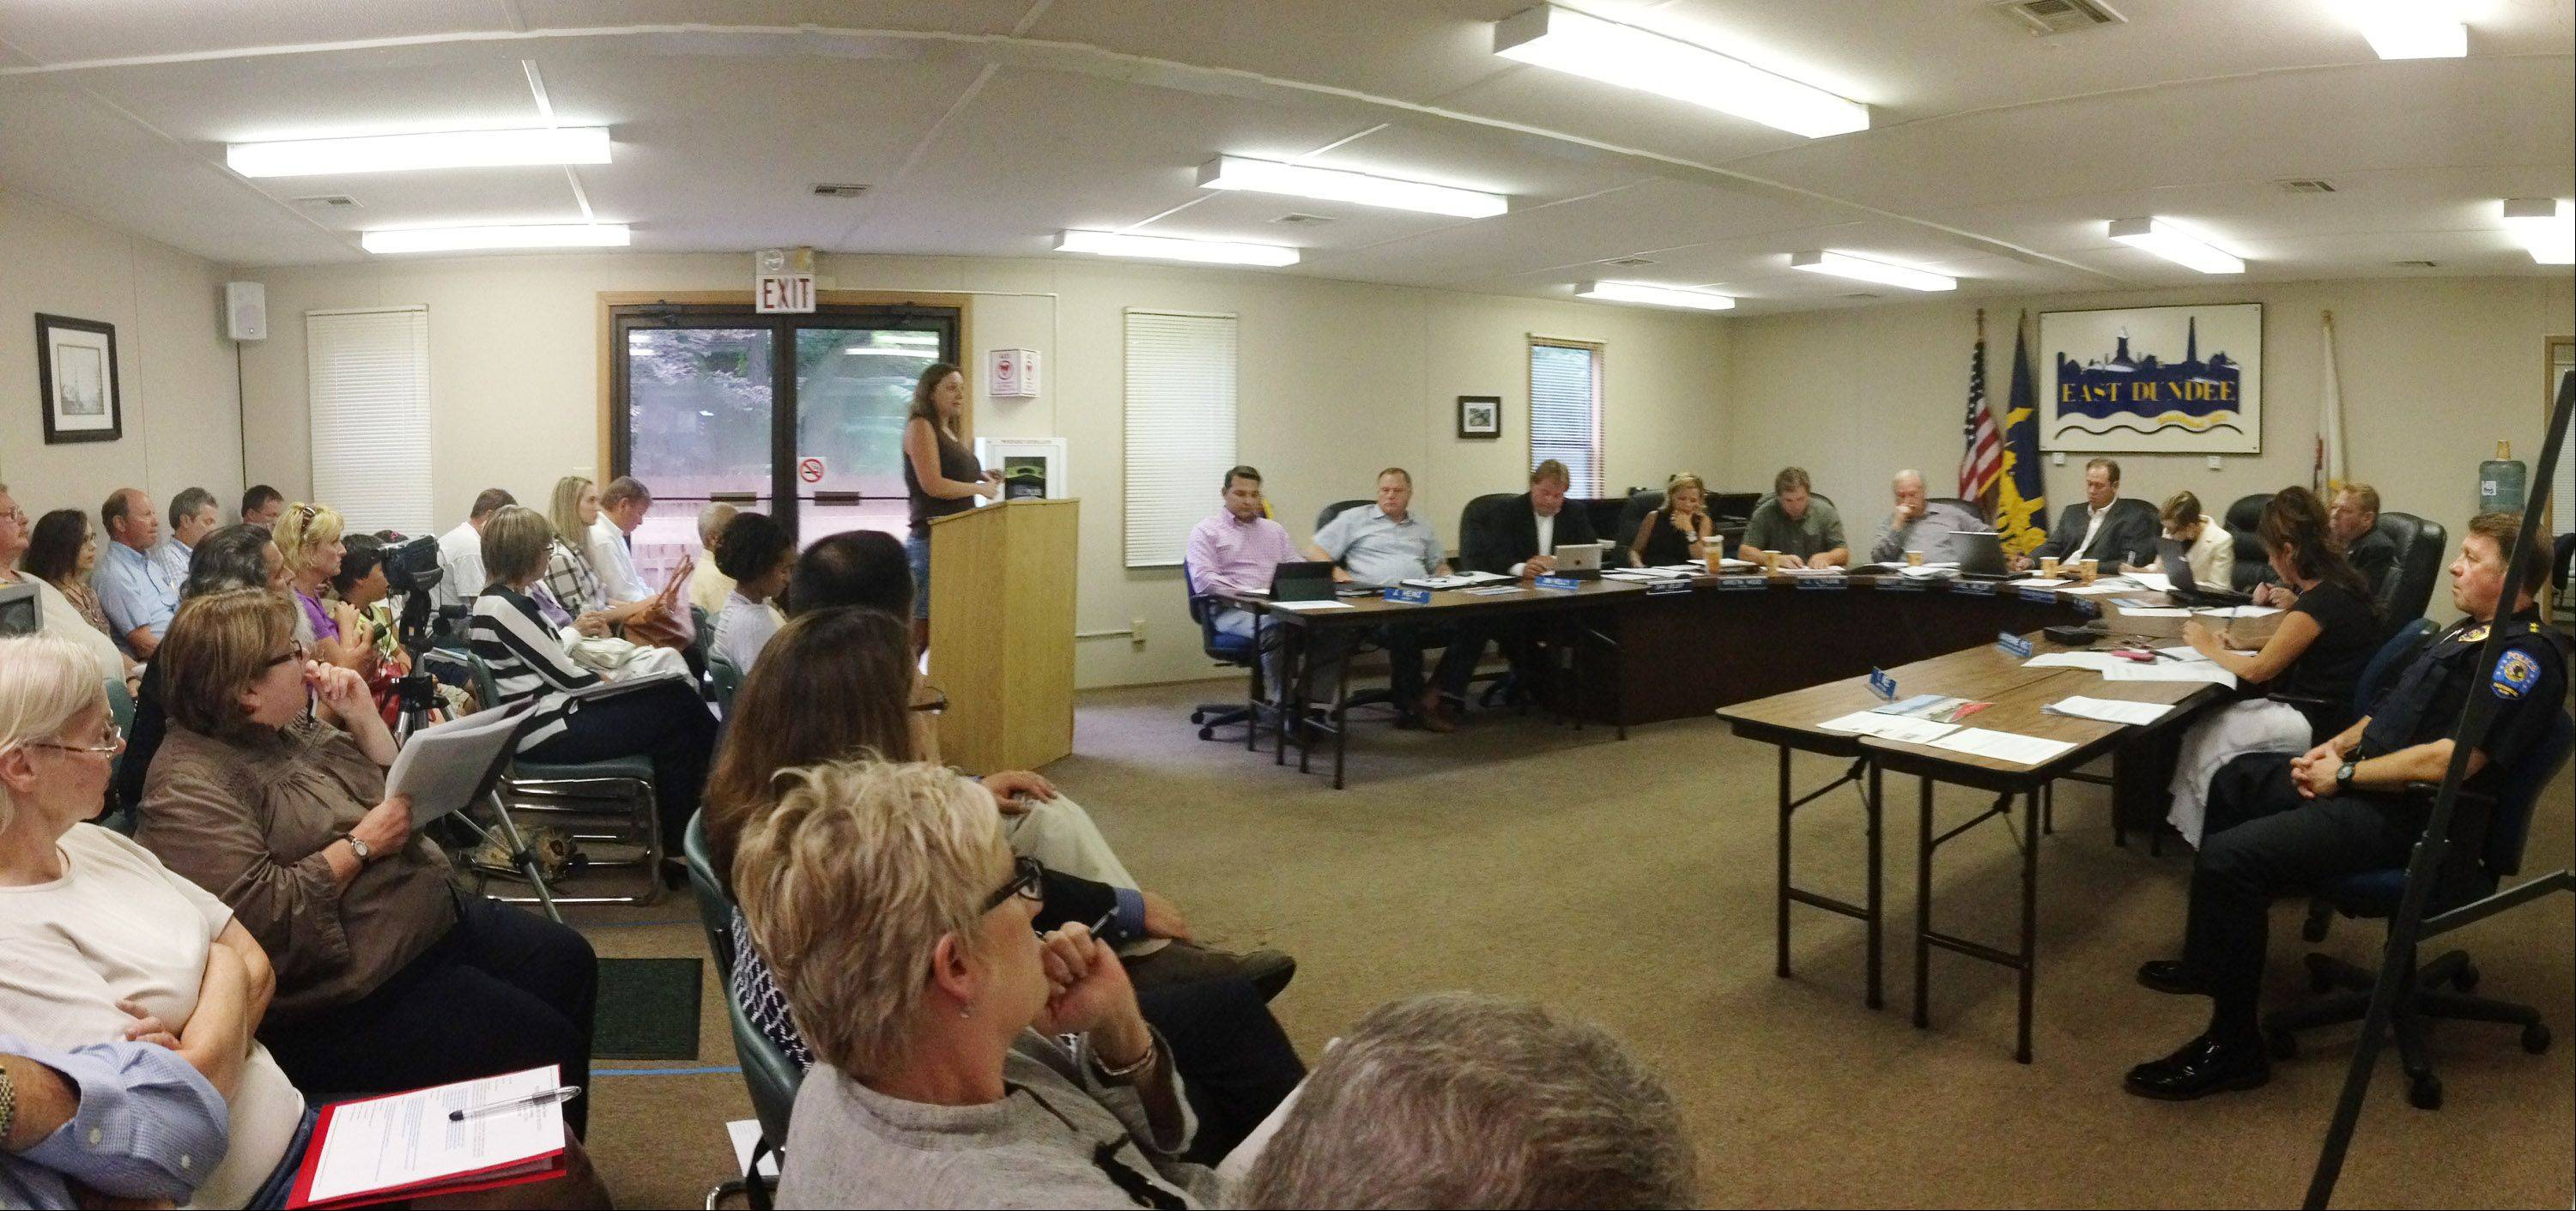 Only four Barrington Hills residents spoke during the East Dundee village board meeting Monday night in which the village approved a redevelopment agreement and industrial subdivision plan for Insurance Auto Auctions. Barrington Hills residents fear IAA, which will do business on the border of the two villages, will pollute their drinking water and urged the board to vote no.